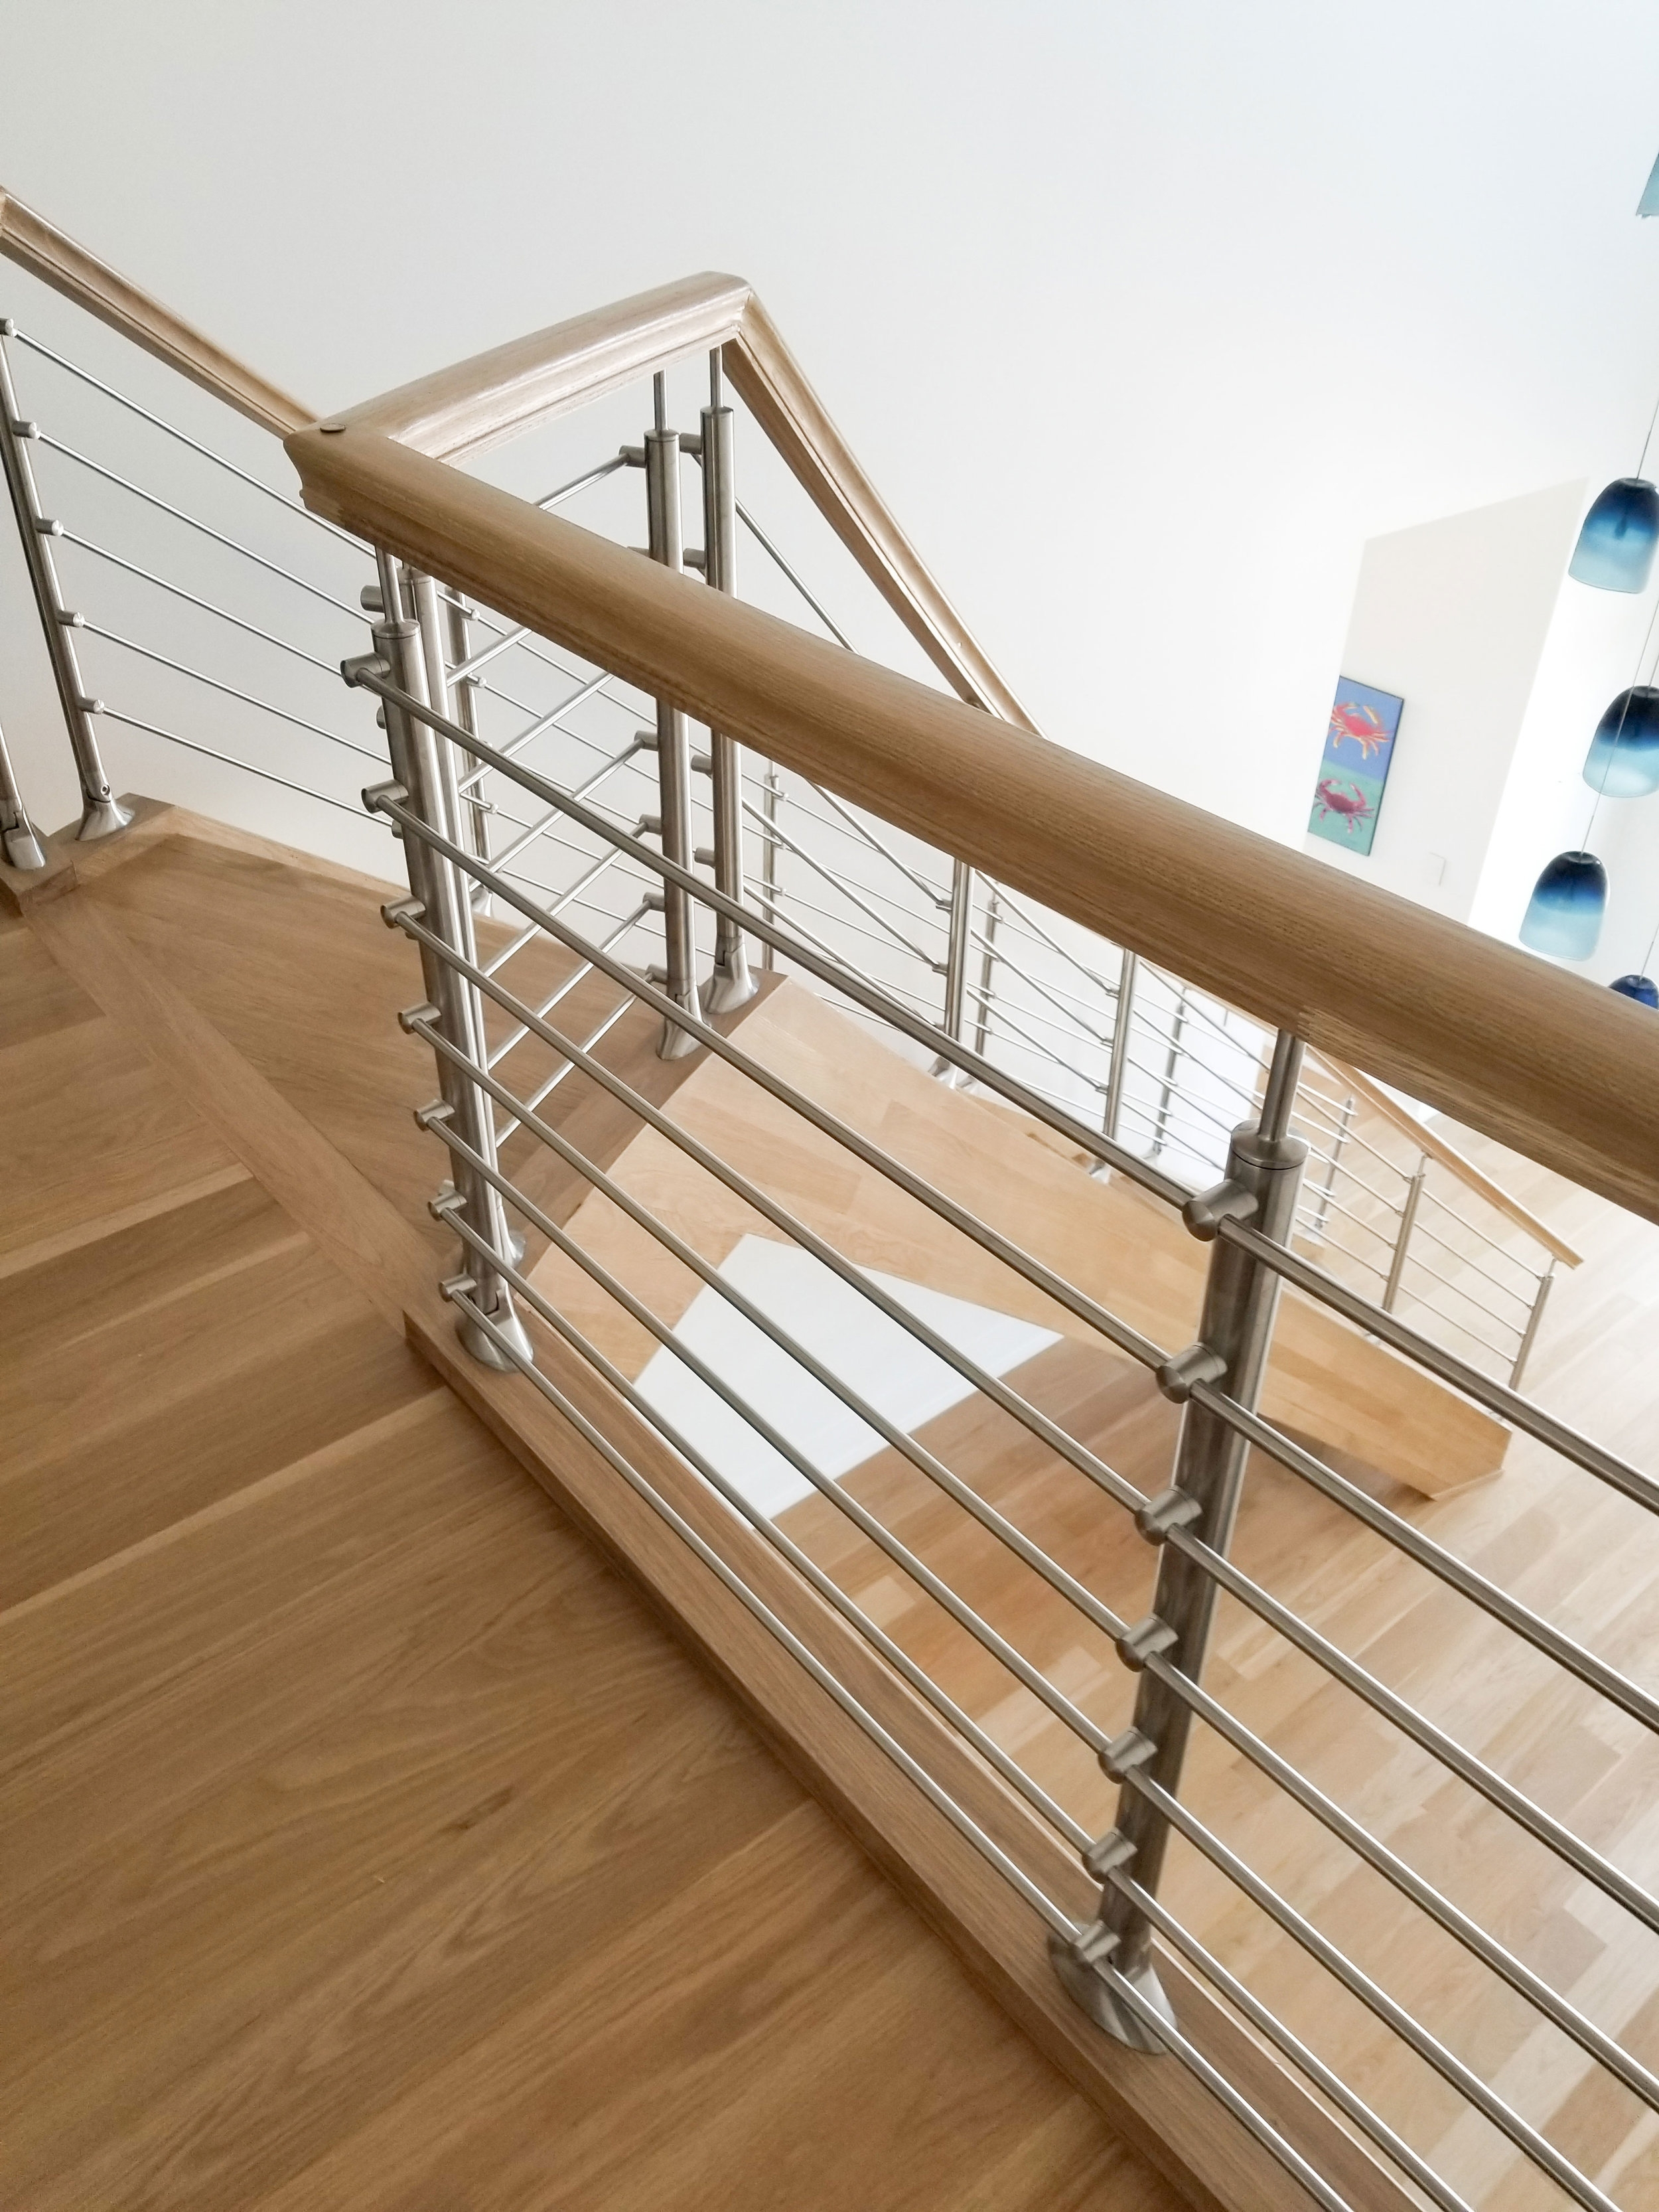 Handrails Fittings — Oak Pointe Stair Parts And More | White Oak Handrail Round | Flooring | Wood Handrail | Foyer | Mopstick | Staircase